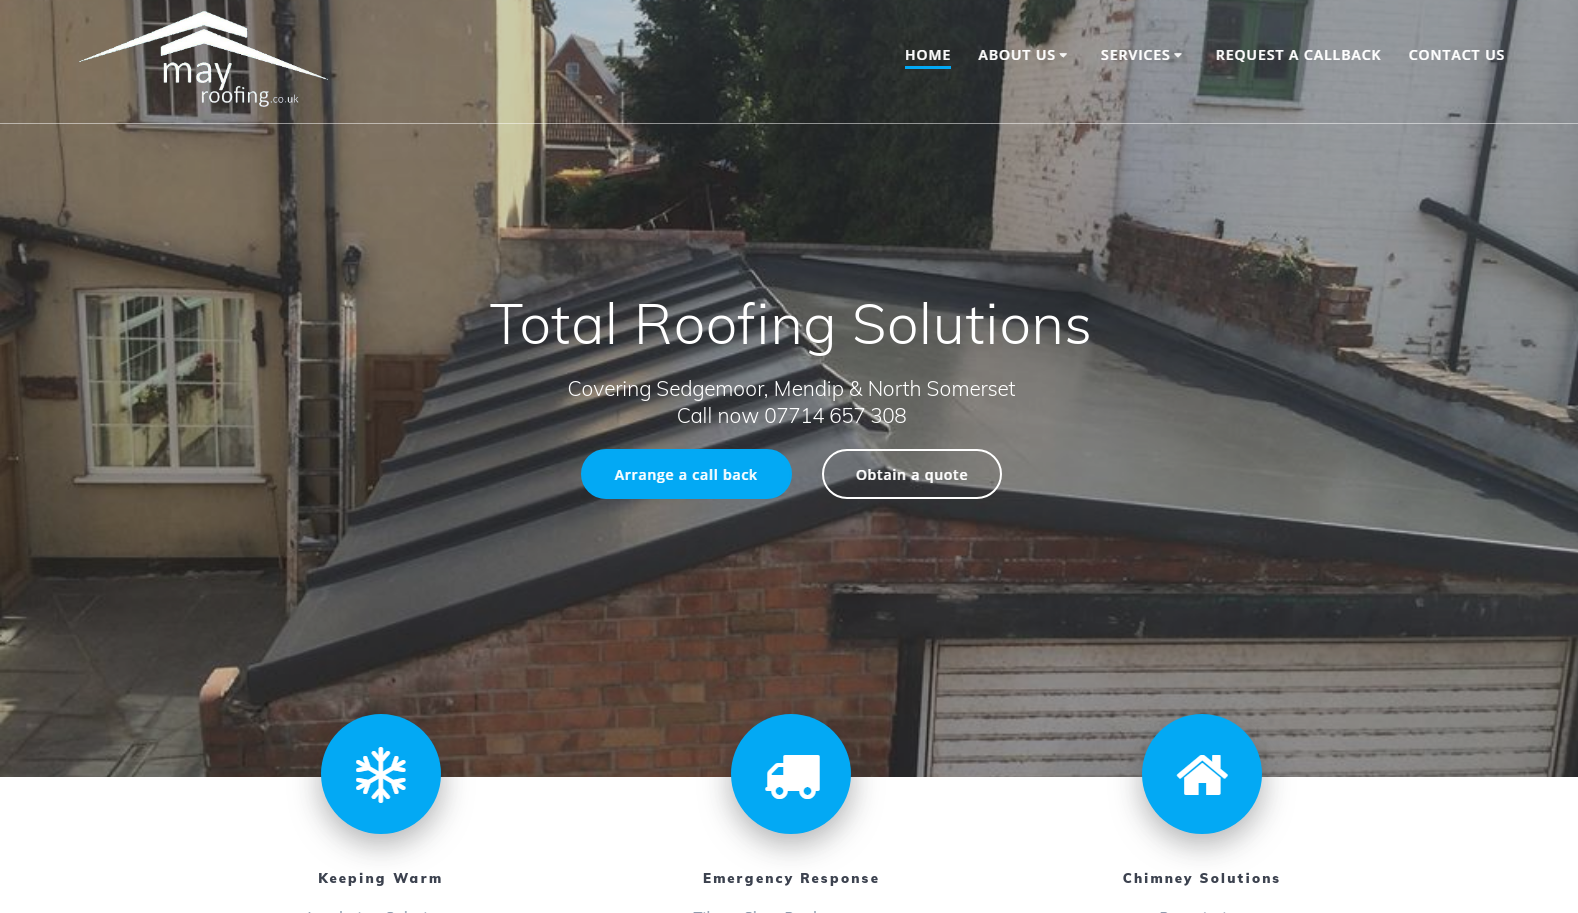 https://www.mayroofing.co.uk